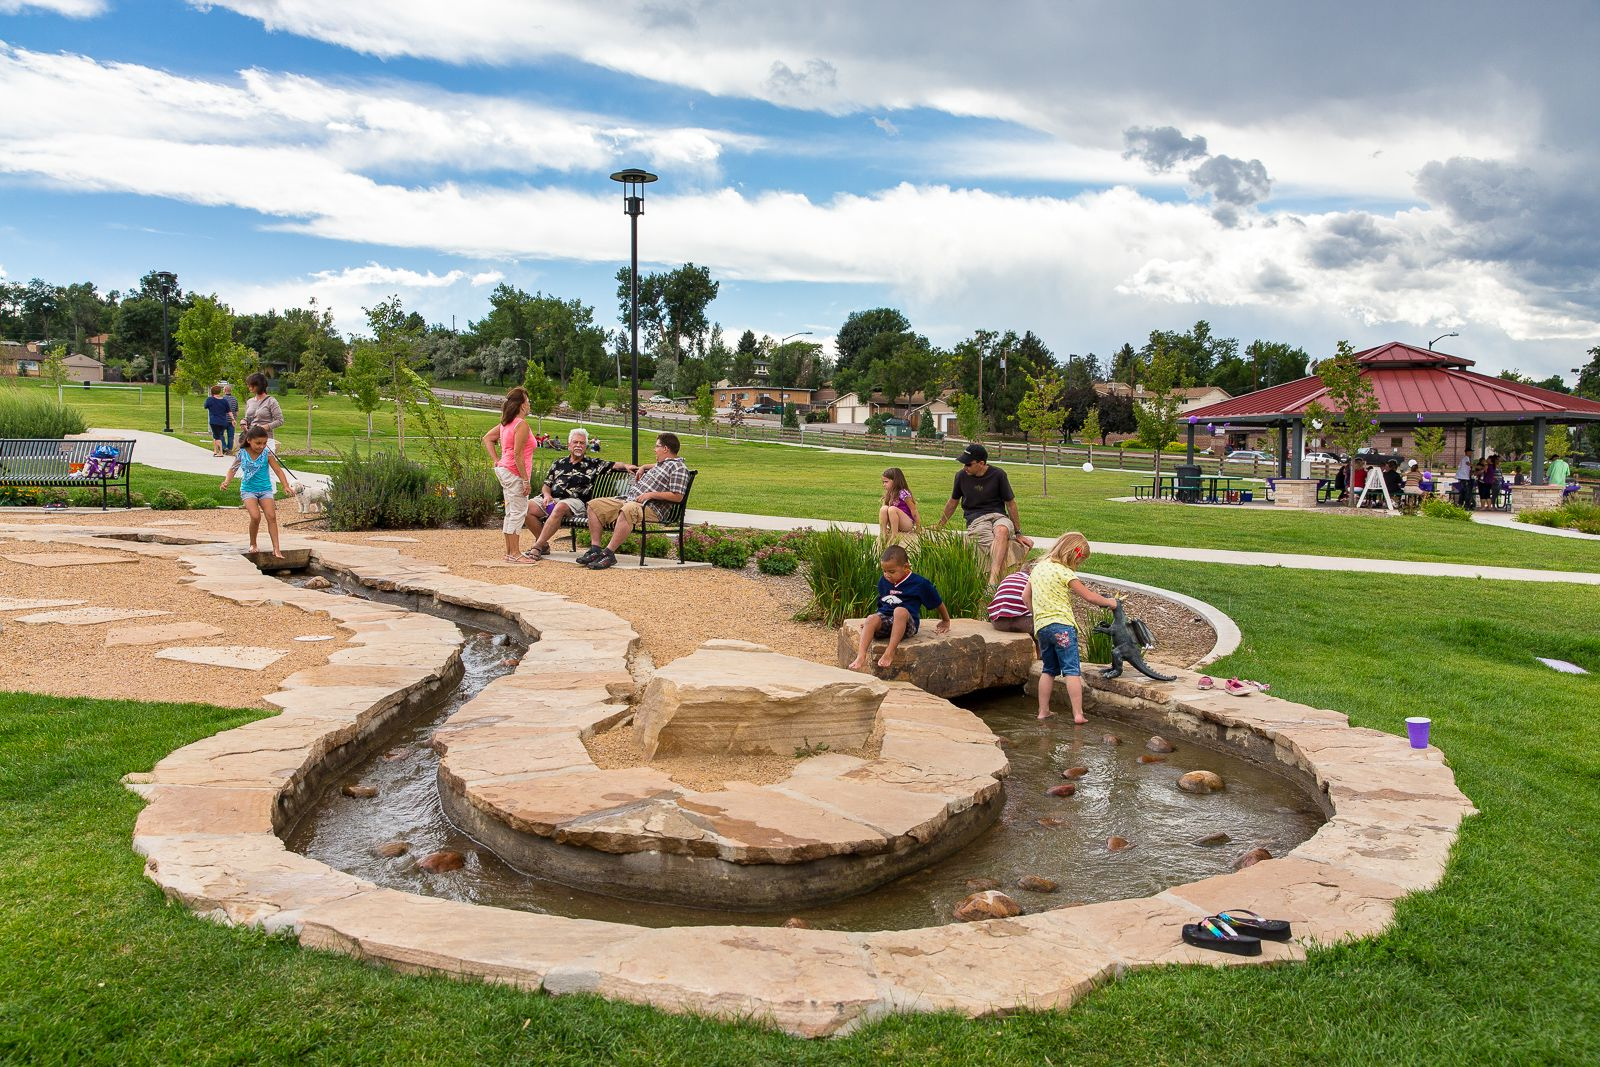 denver landscape architect park design playground water